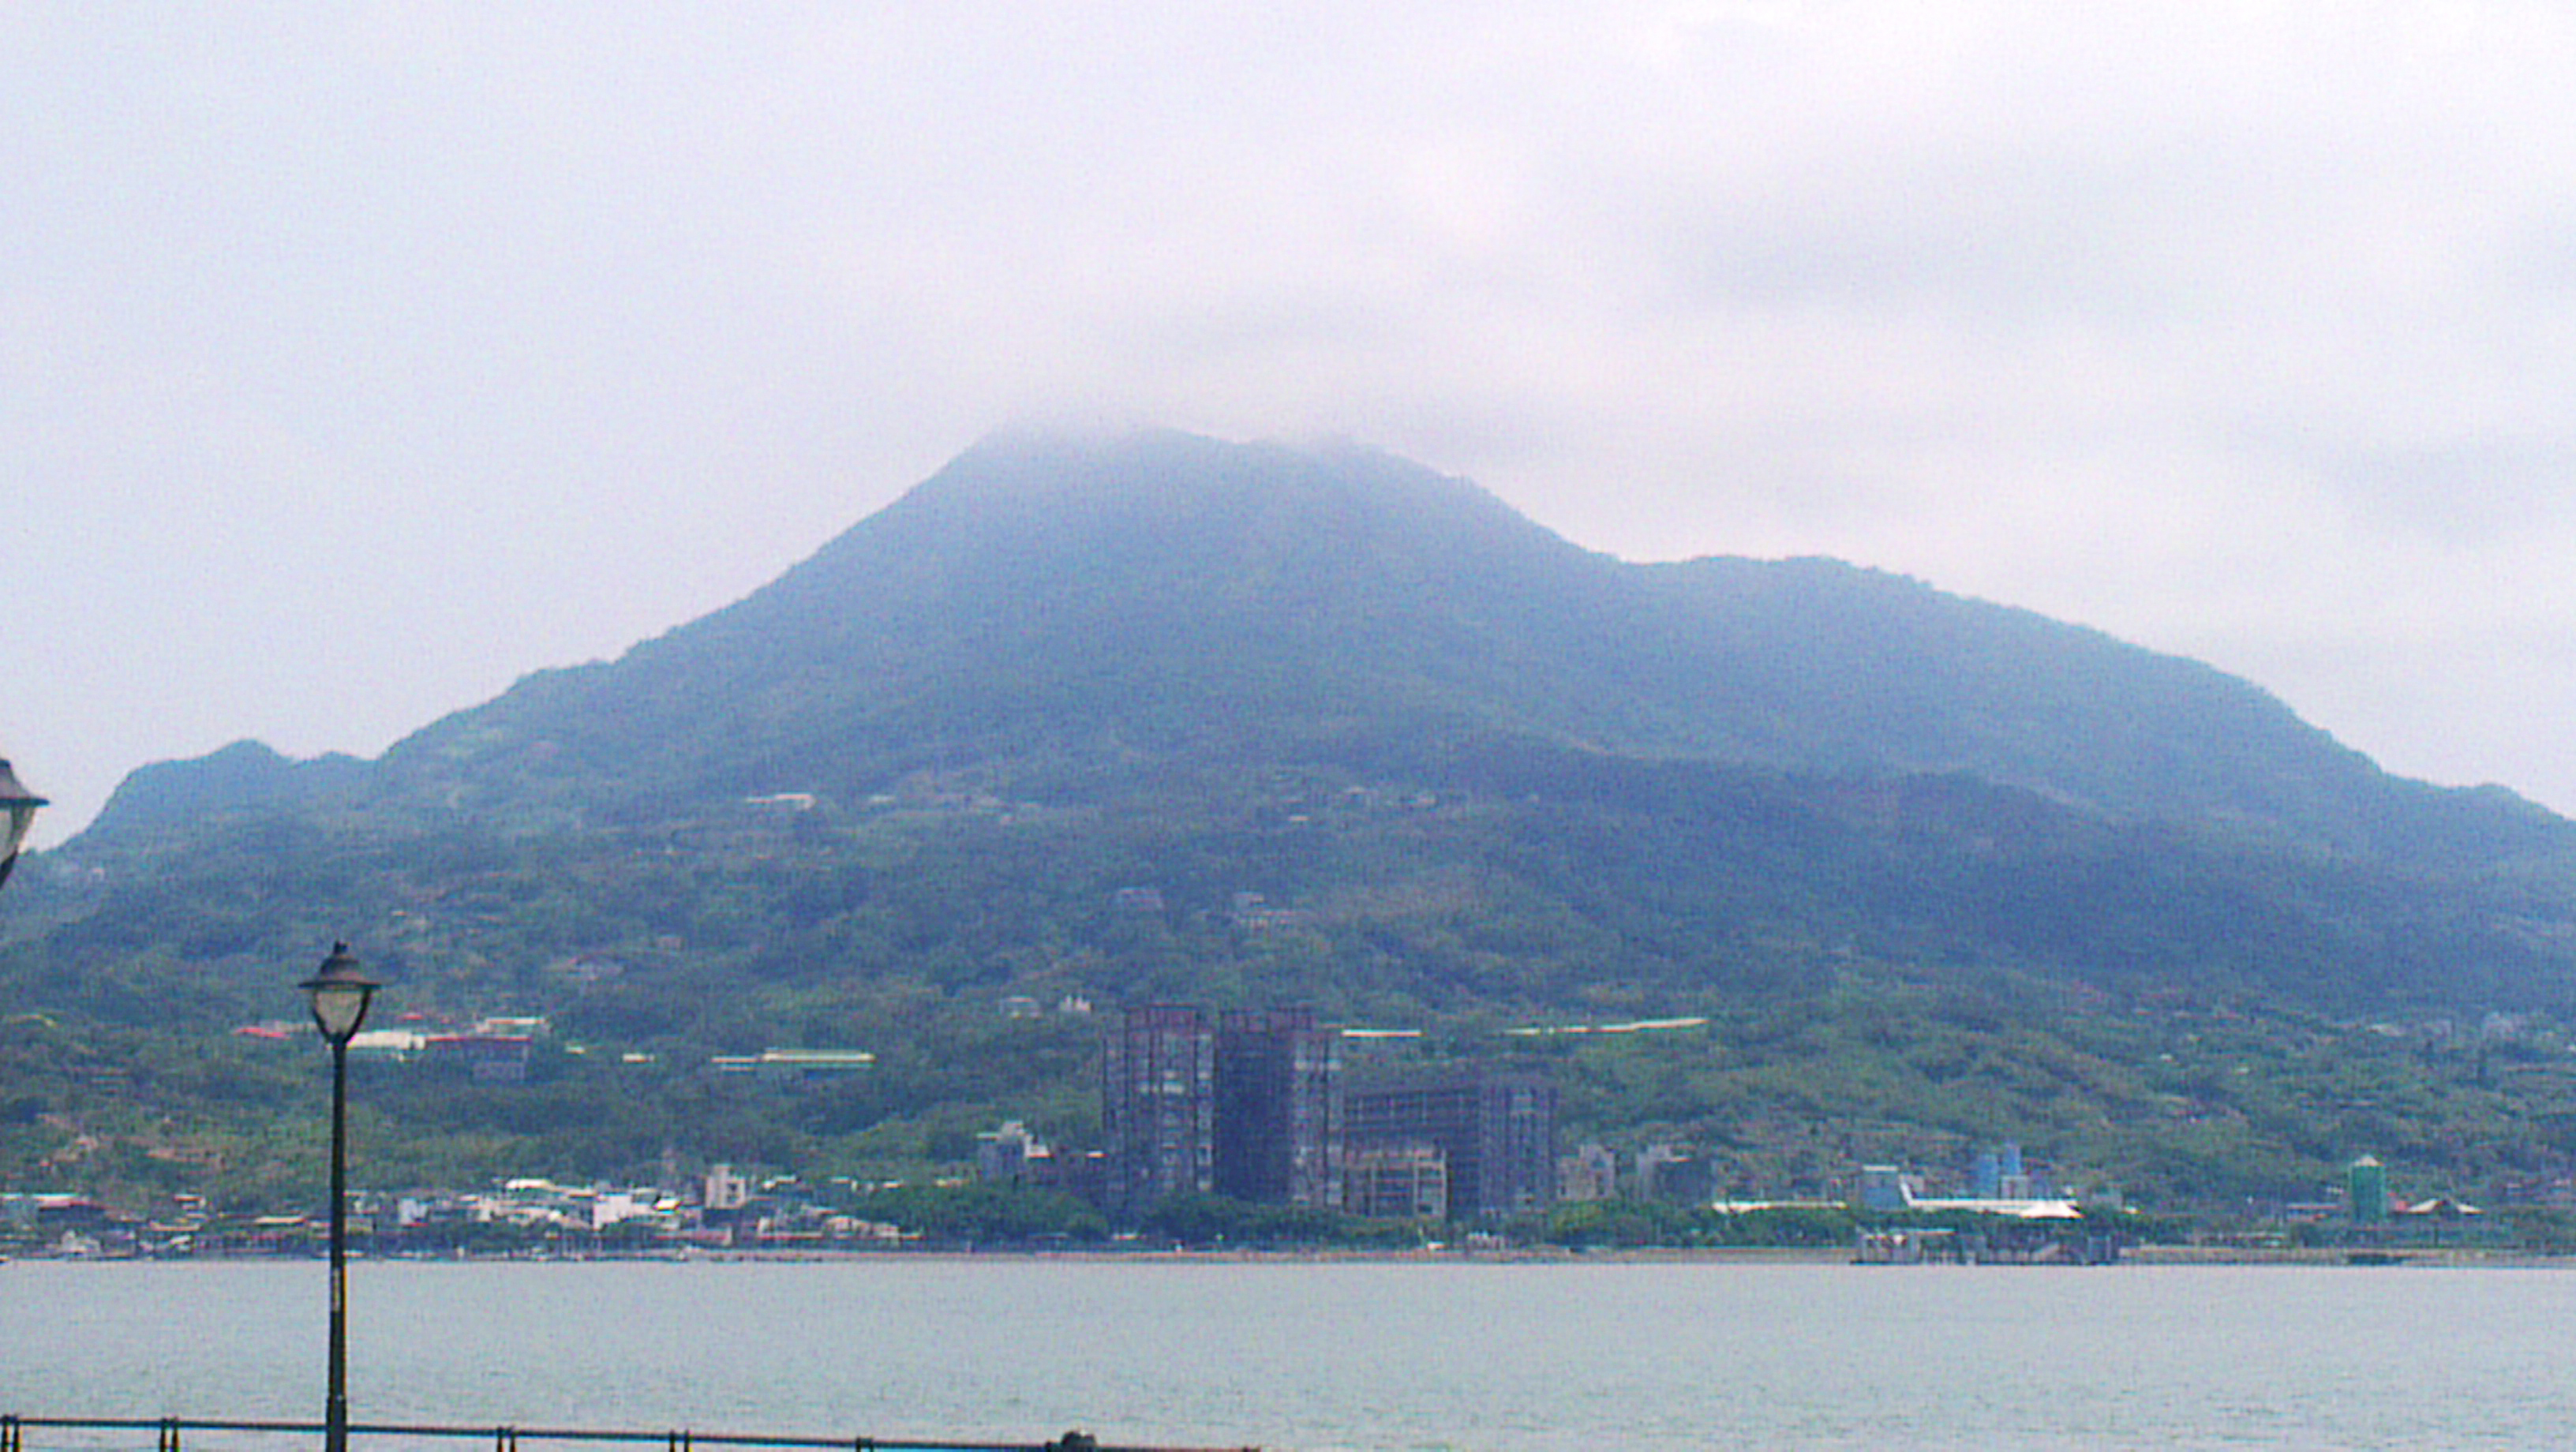 A view of Kuanyin Mountain from the Tamsui River